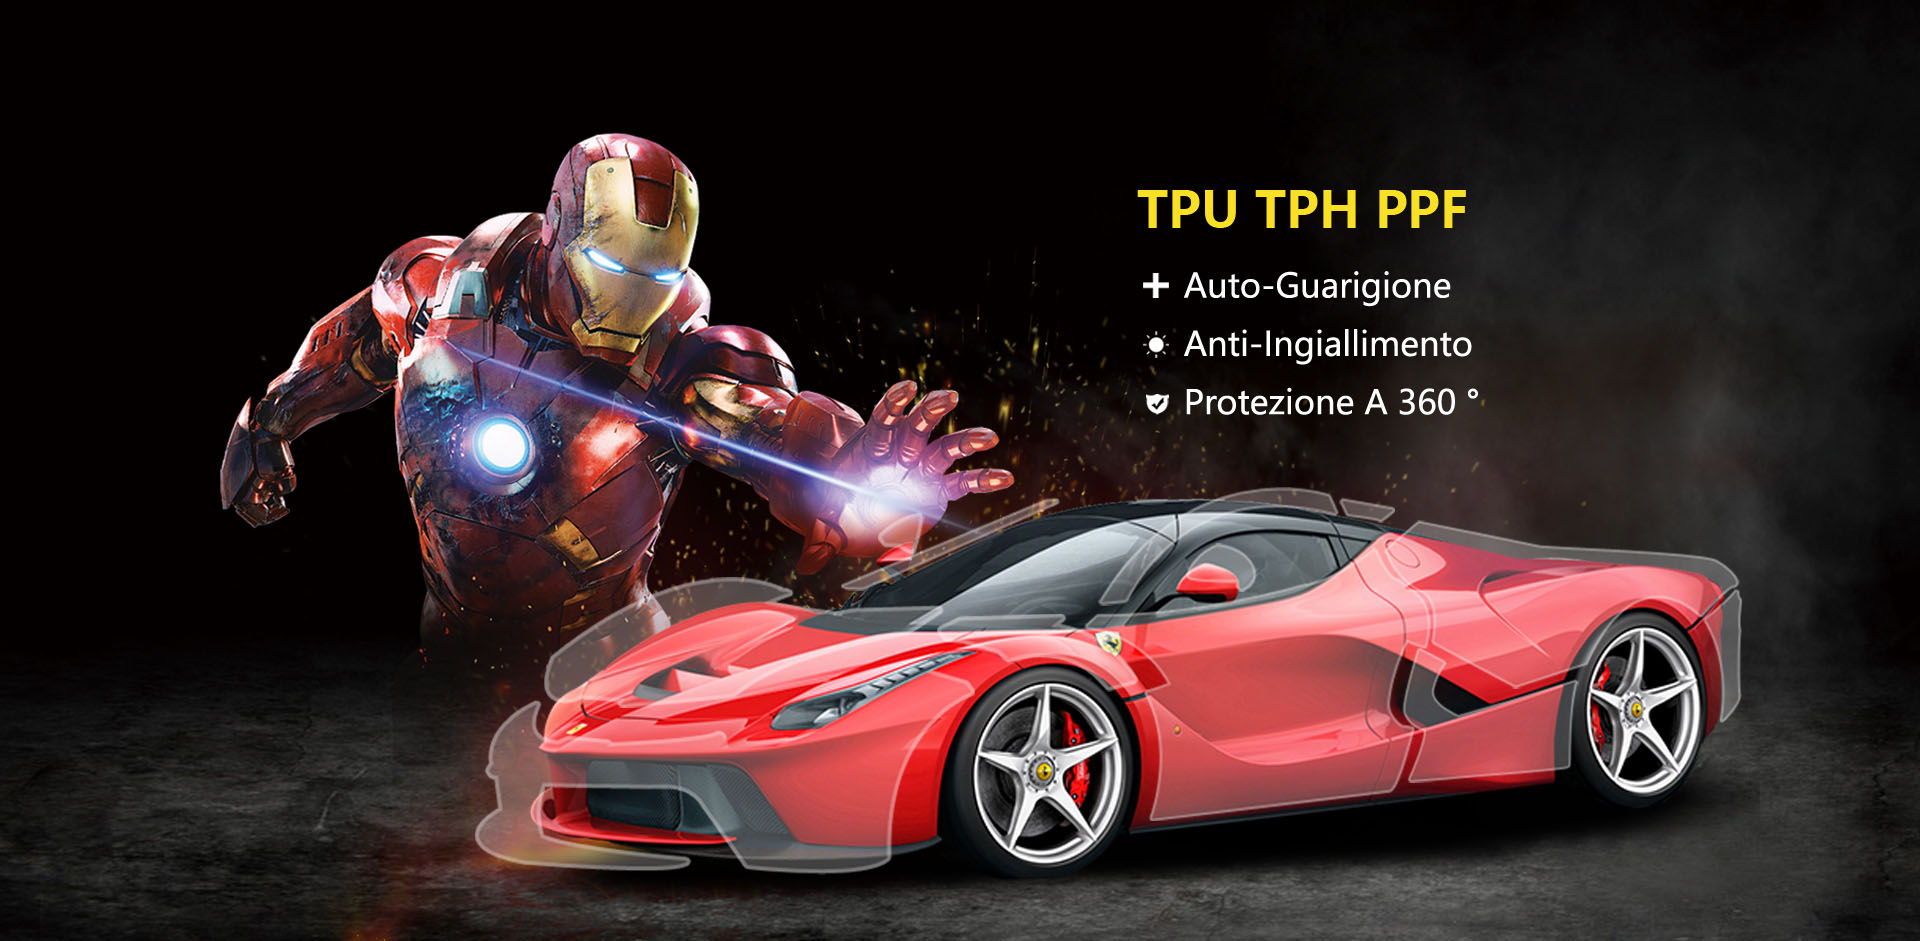 PPF TPU TPH Car Paint Protection Film